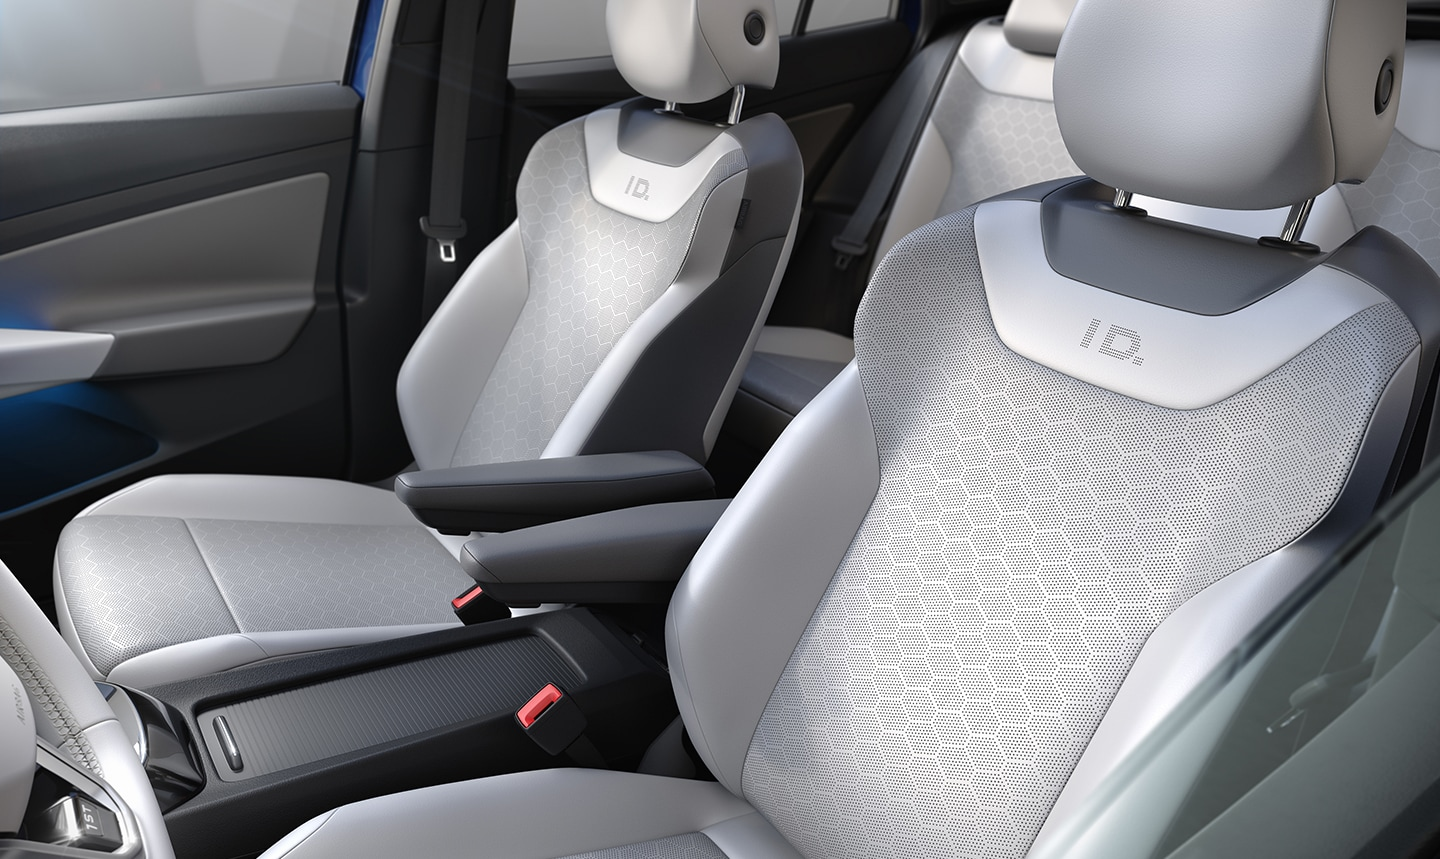 VW ID.4 heated front seats in Lunar Gray V-Tex leatherette